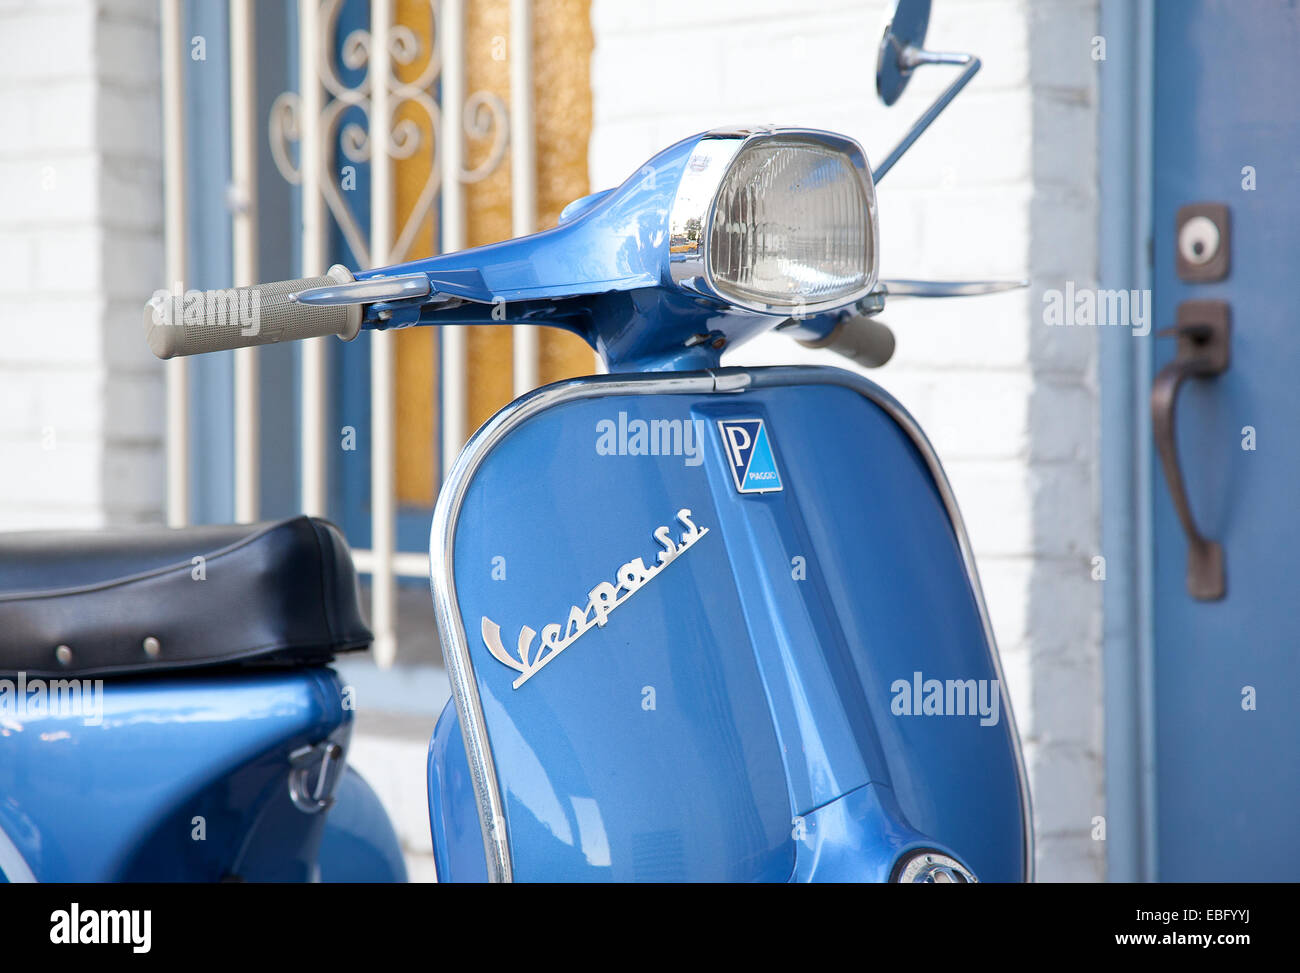 Detail of light blue super sport Vespa scooter in front of a building - Stock Image